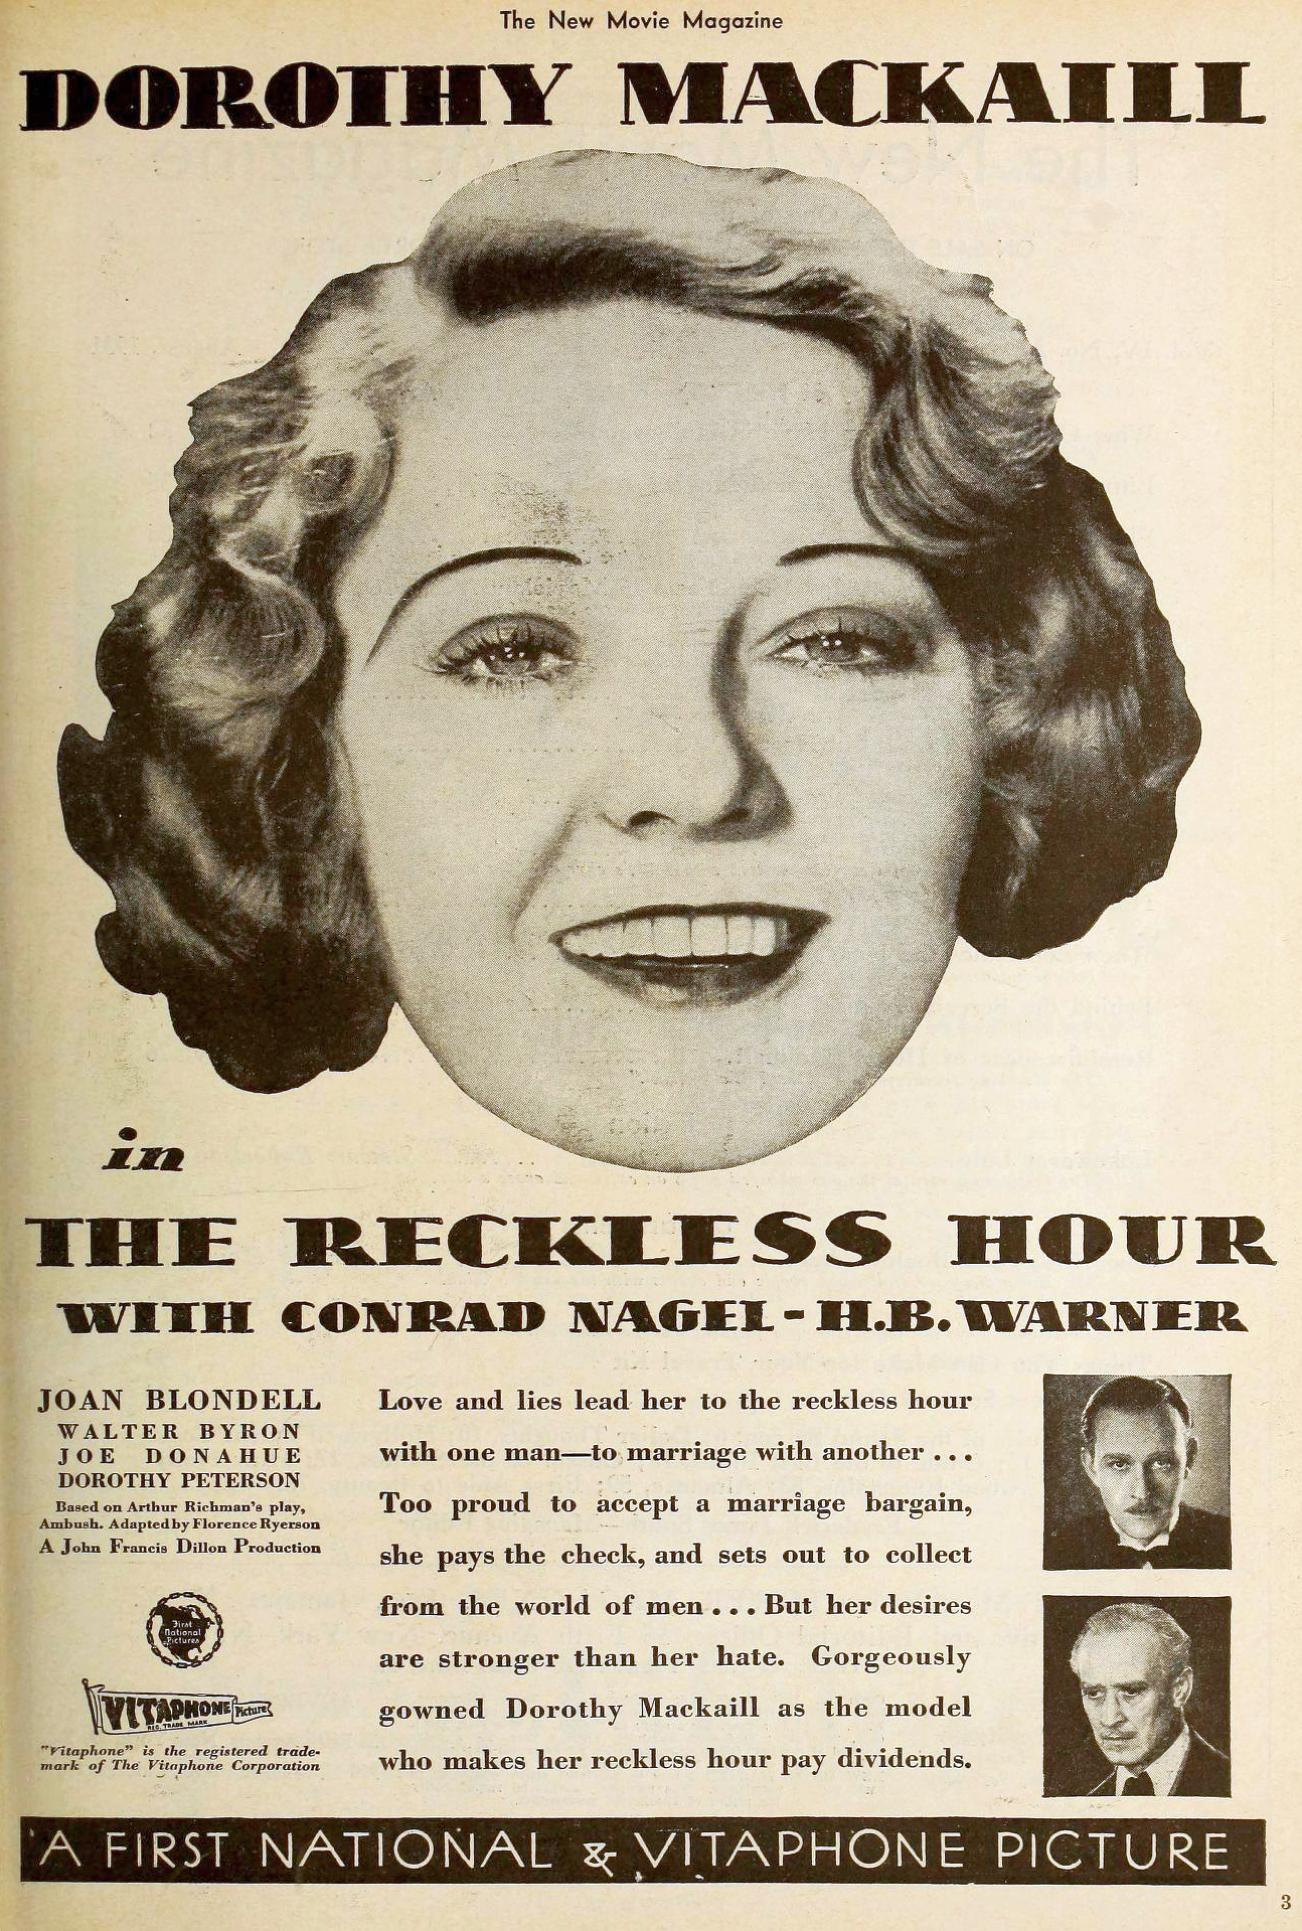 the new movie magazine august 1931 dorothy mackaill large